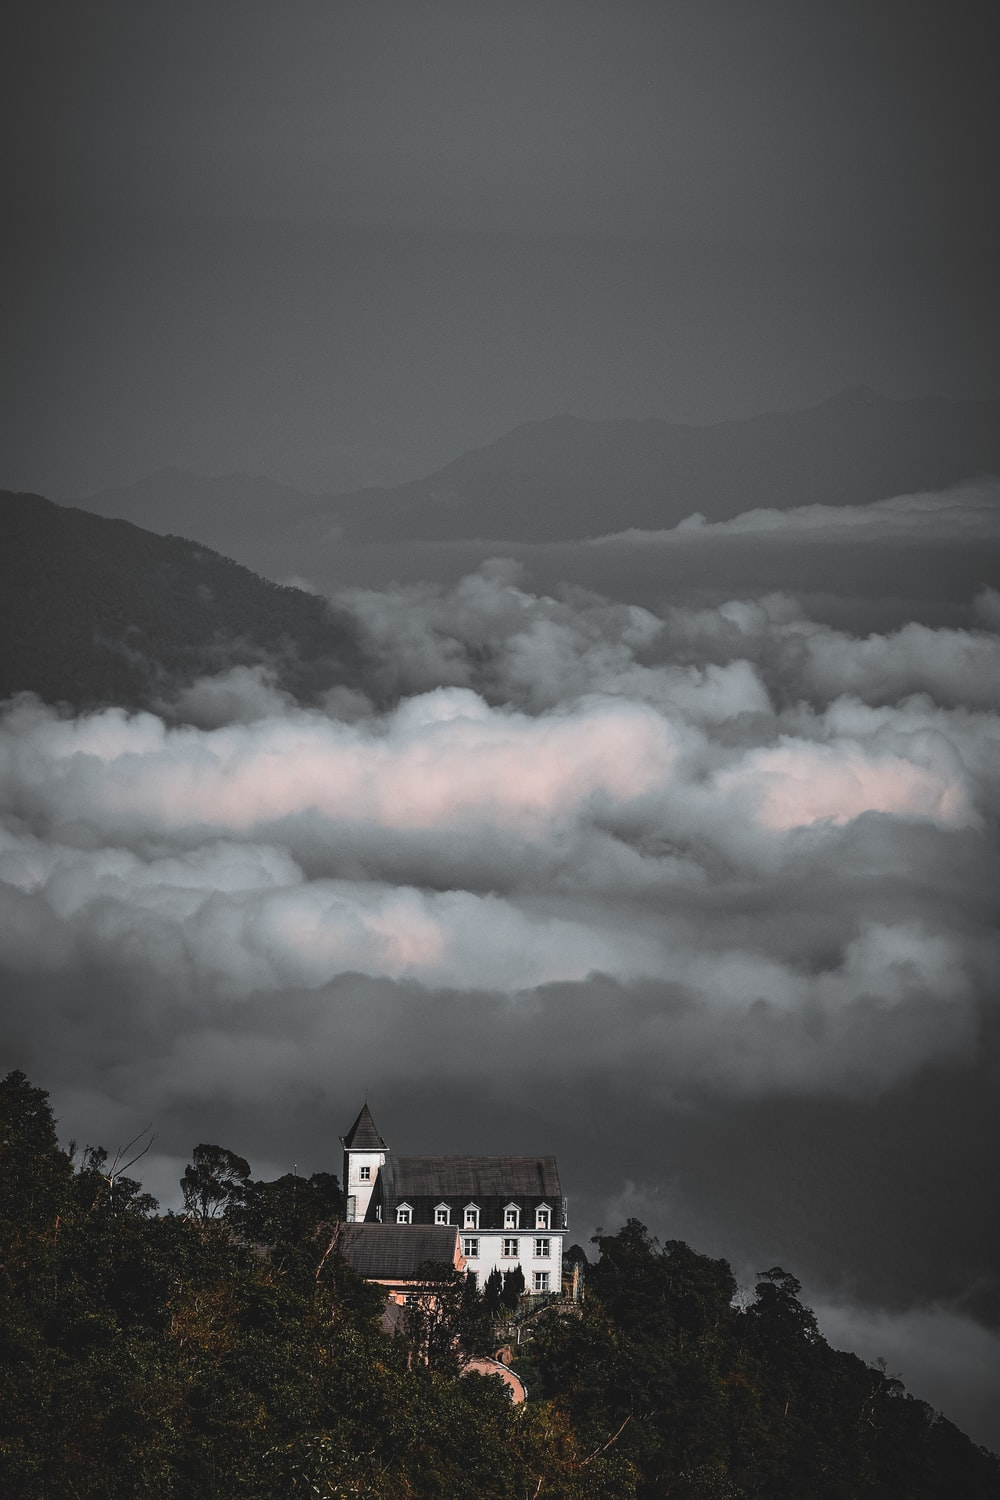 building on mountain near trees and clouds